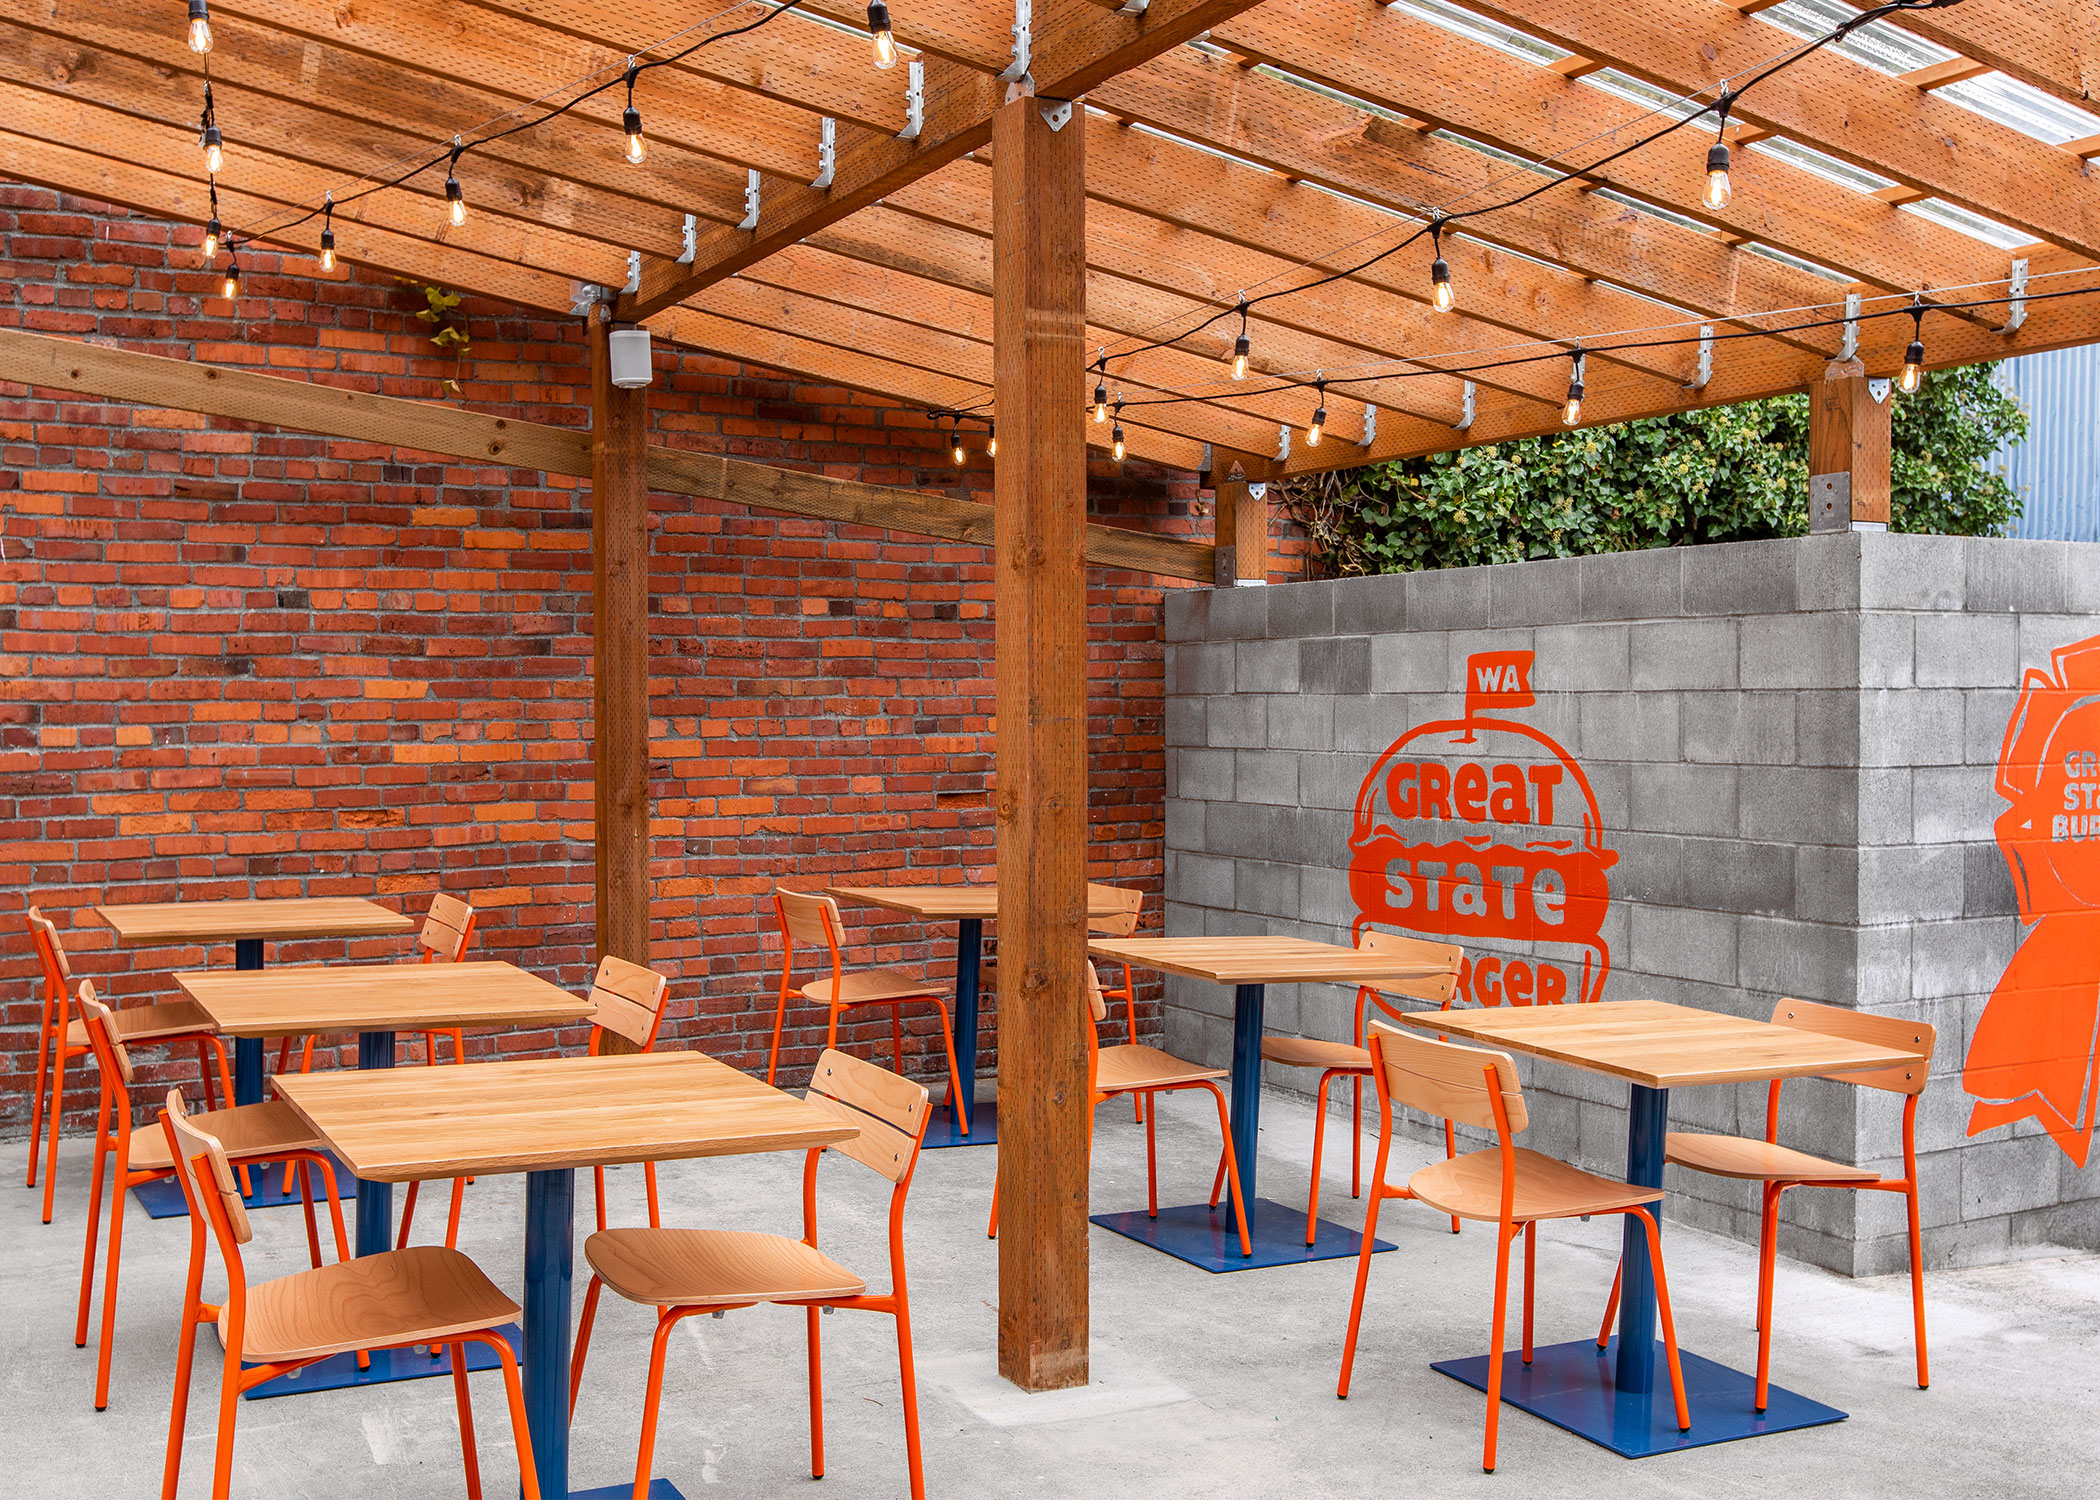 Contemporary-Burger-Restaurant-Design-Sherman-Chairs-and-Brady-Tables